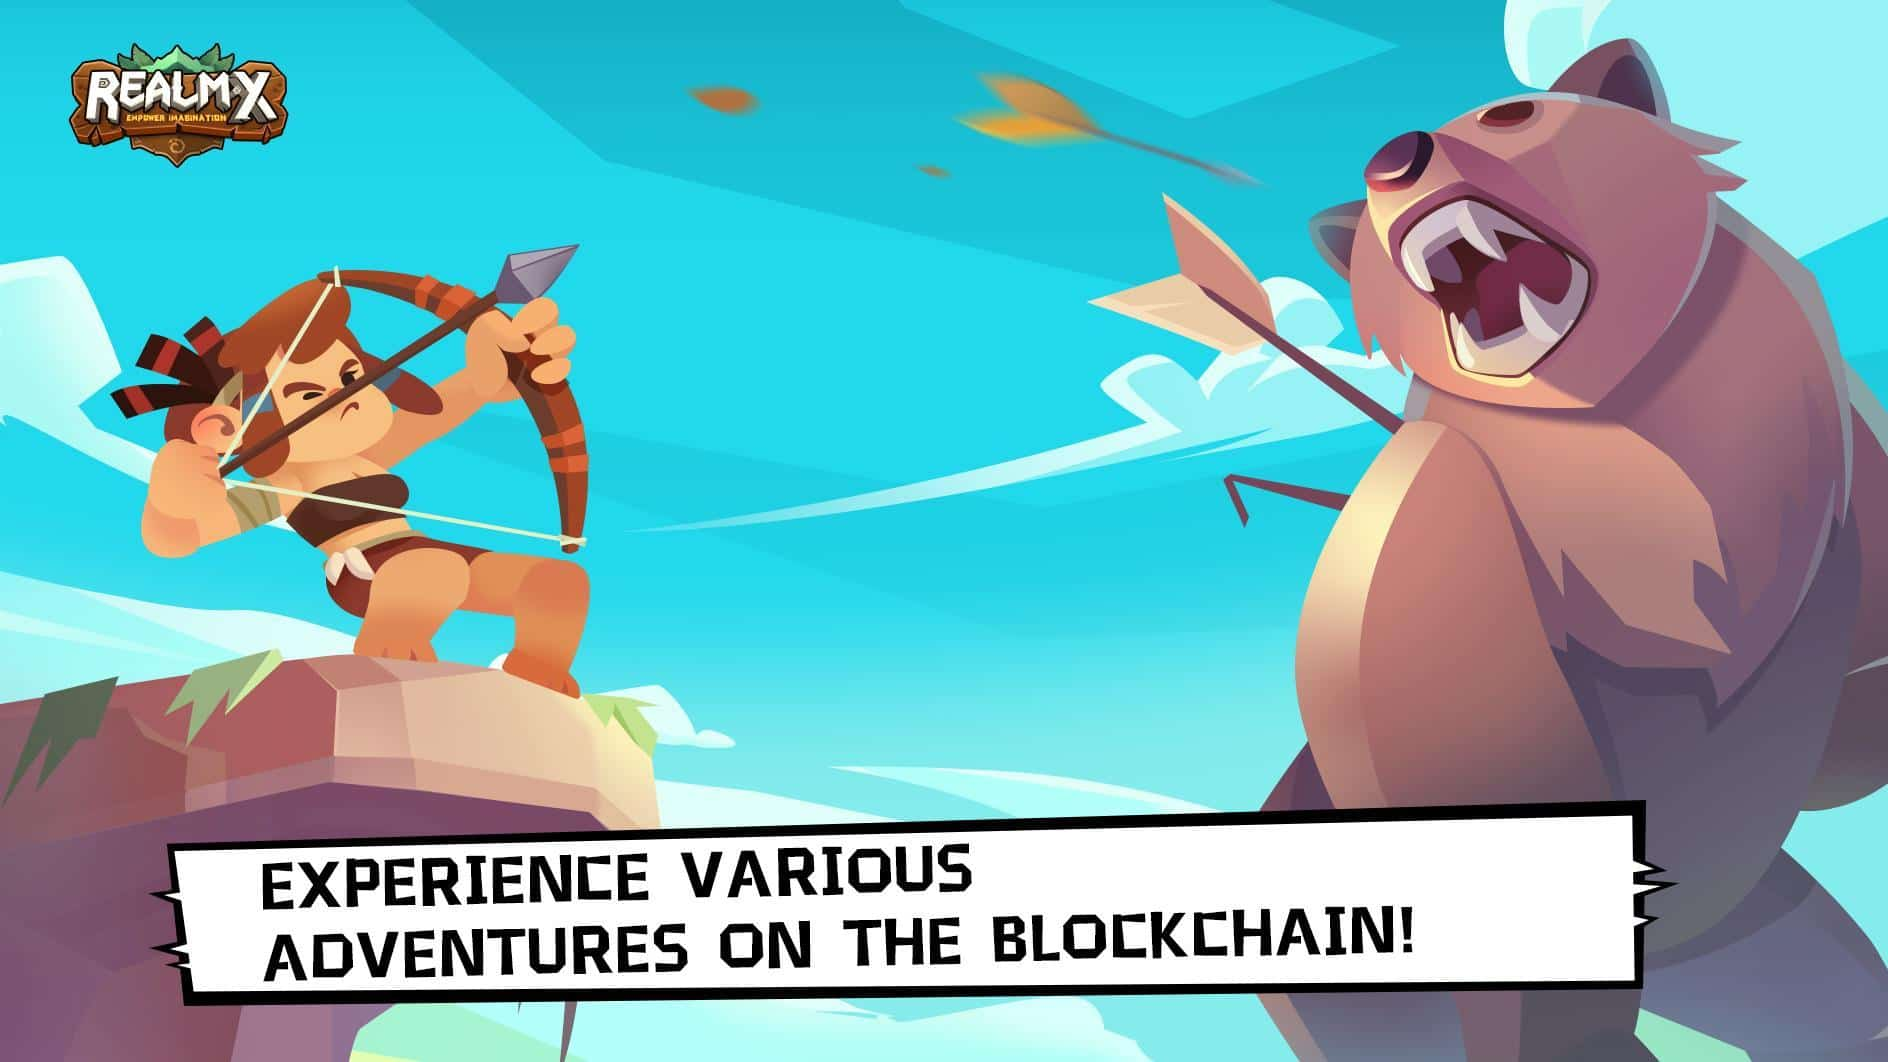 Bitcoin Cash Blockchain Based Game Realmx Rolled Out Officially